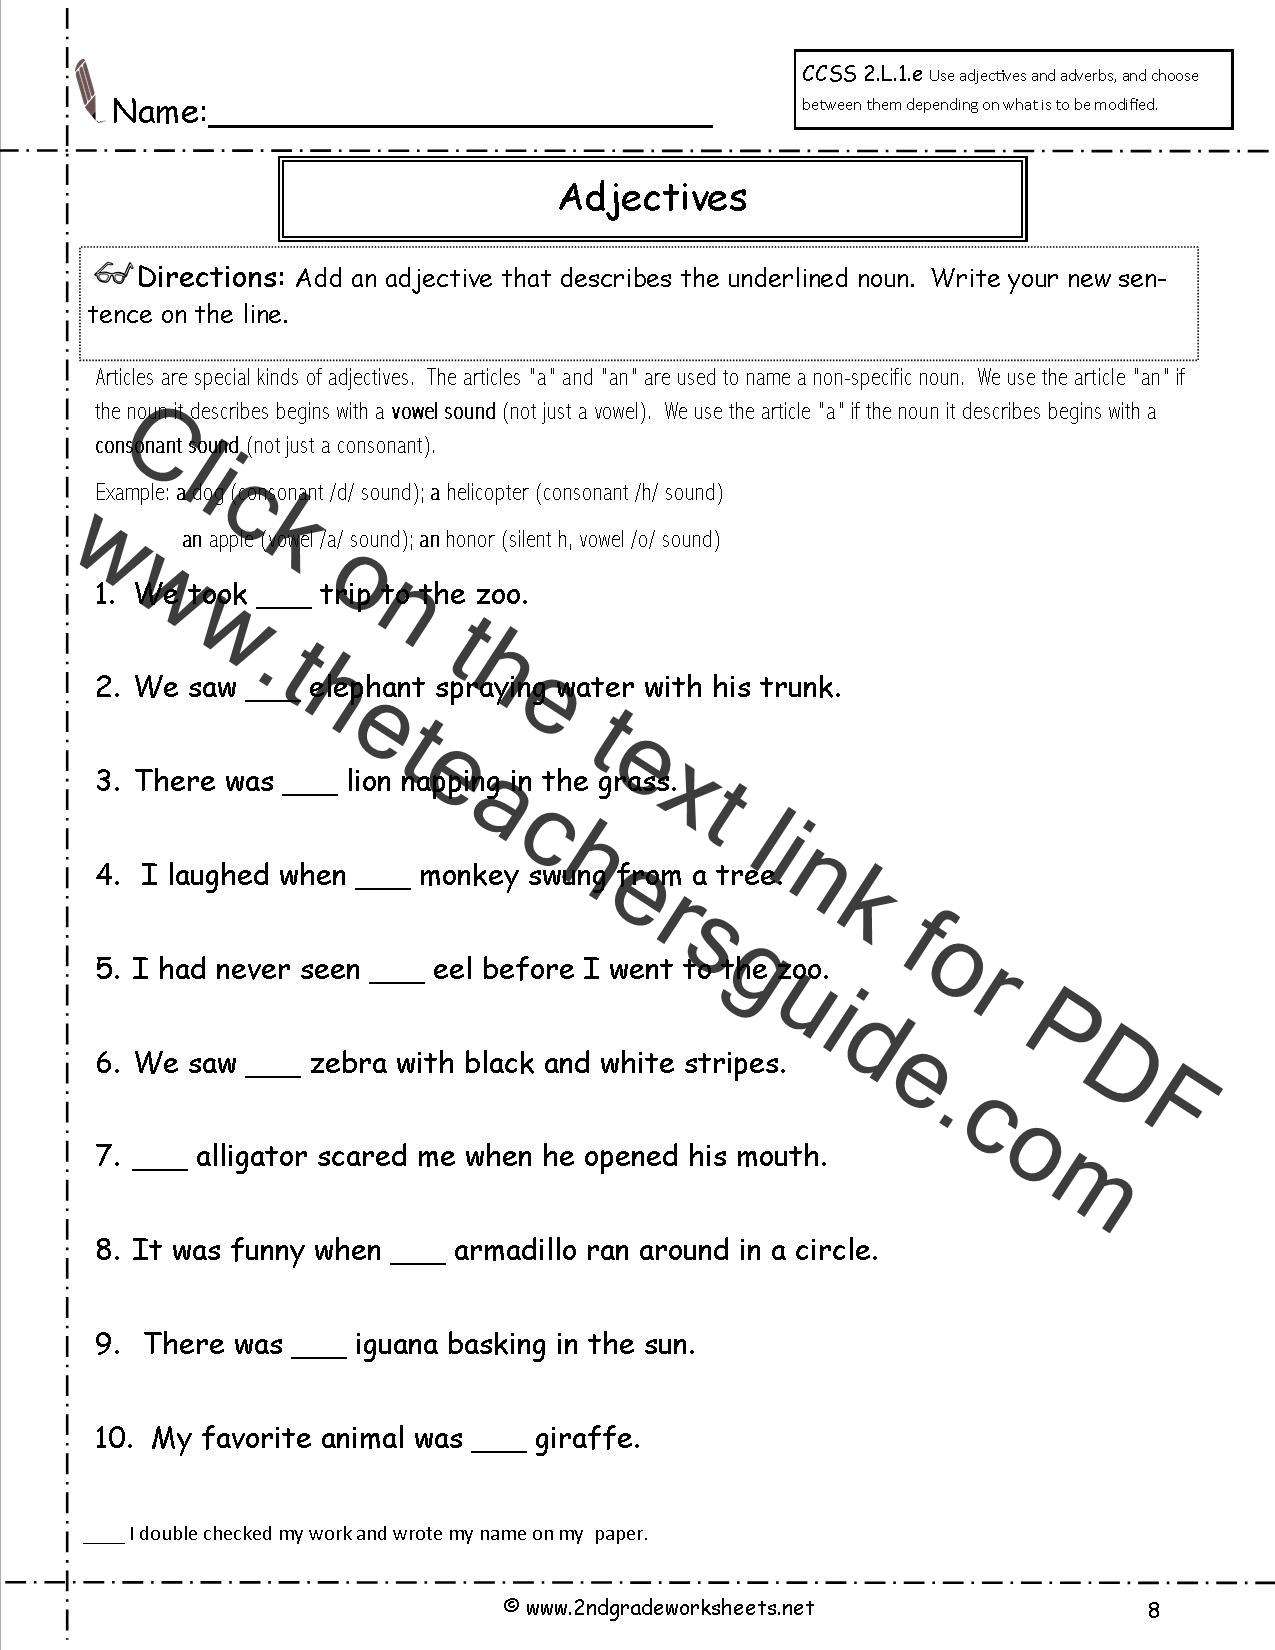 Printables 2nd Grade Ela Worksheets free languagegrammar worksheets and printouts adjectives worksheets